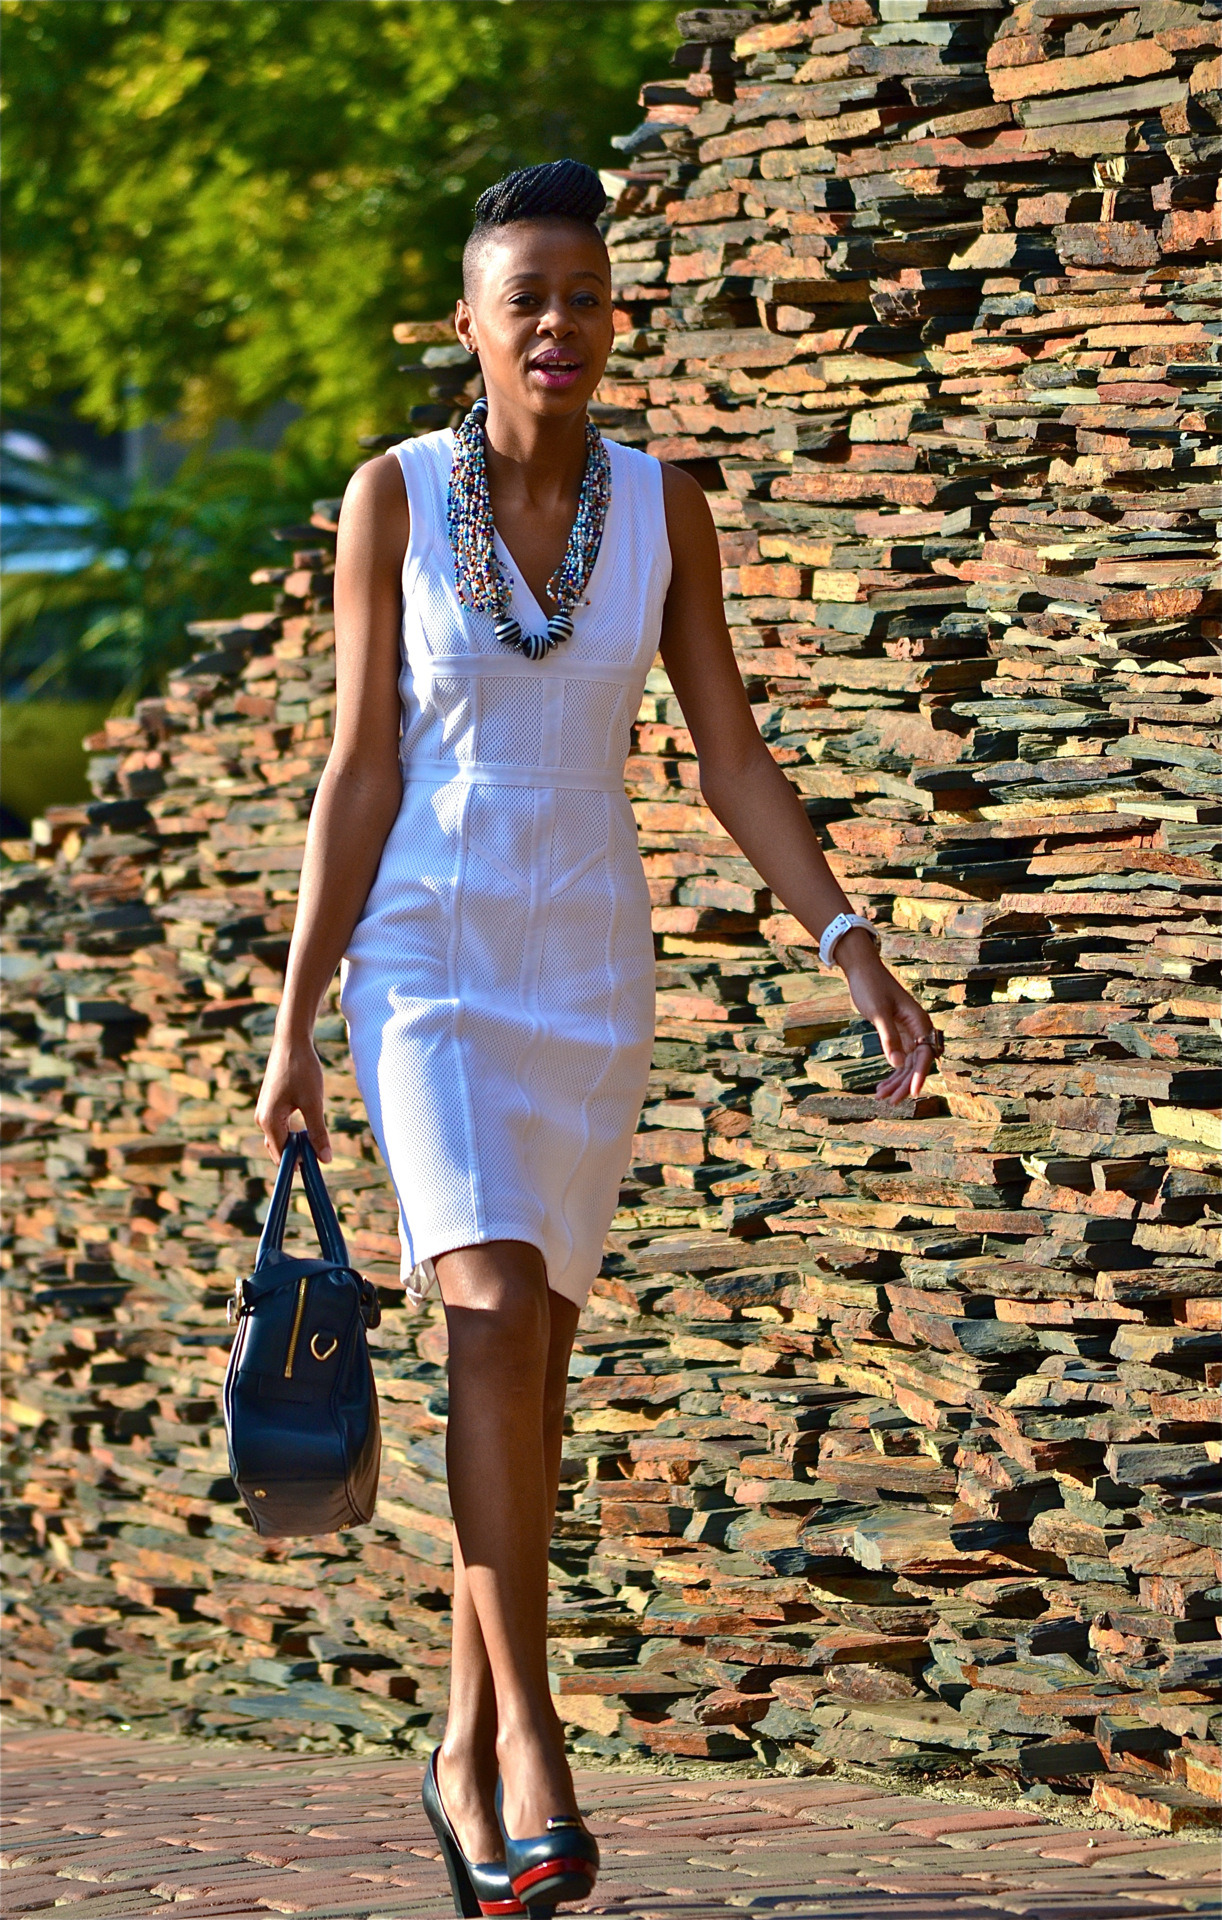 SA FASHION WEEK | Street Style Photographed by: The Expressionist